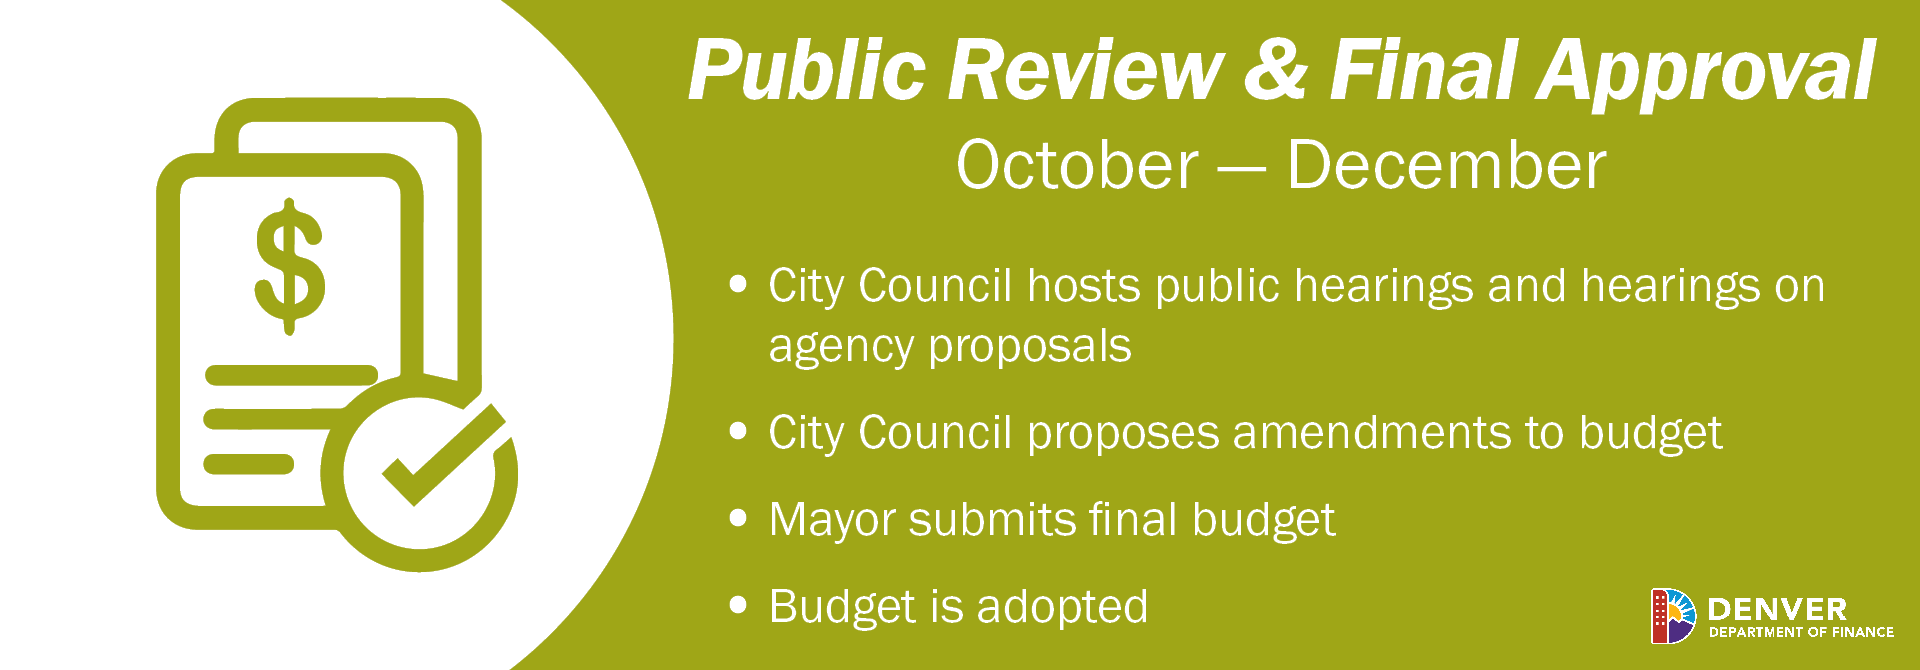 Q4 Budget Process - Oct. through Dec. - Council Review and Budget Adoption